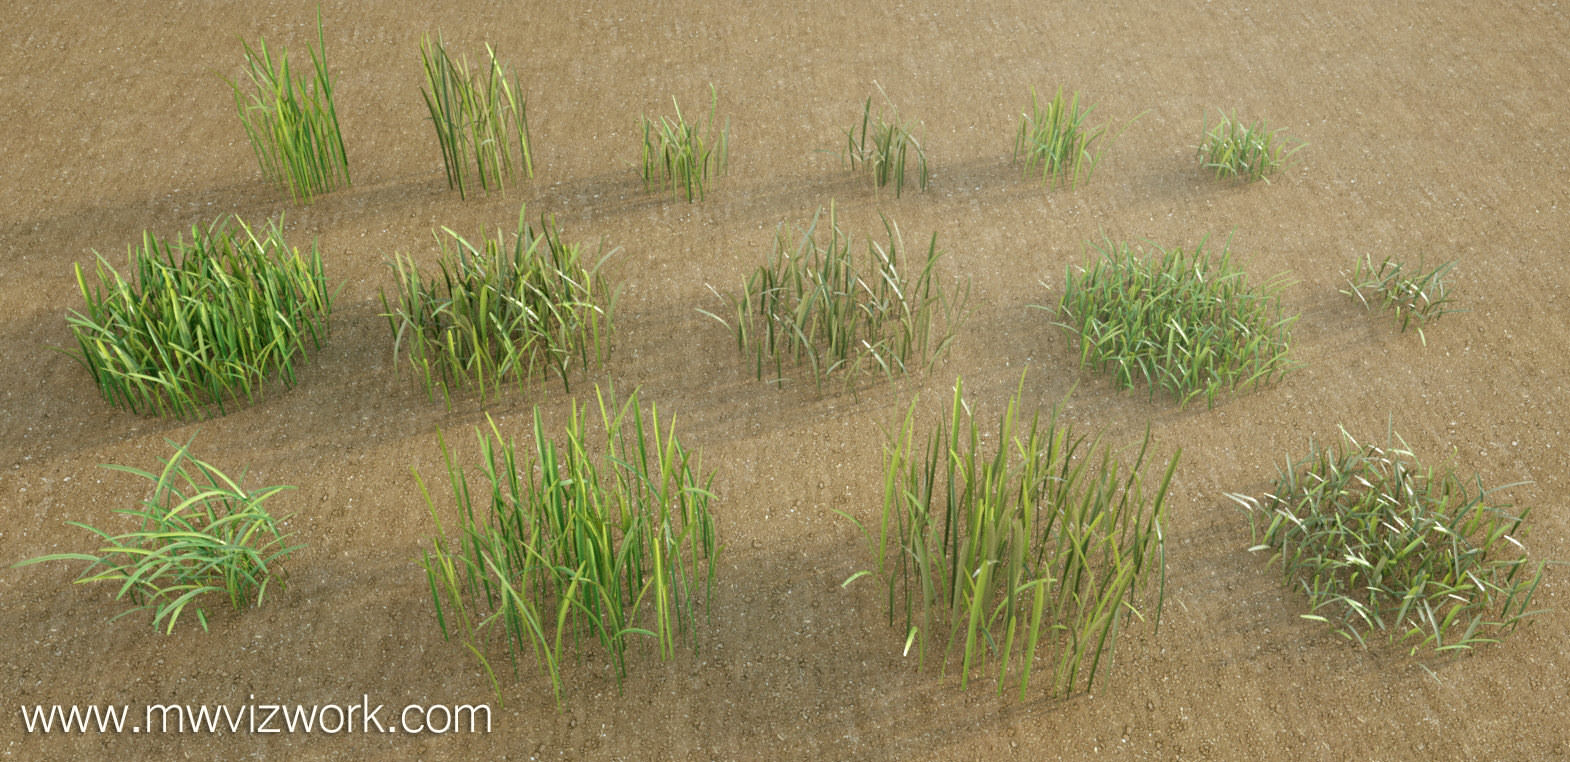 Free Grass by Mischa Winkler - 3D Architectural Visualization